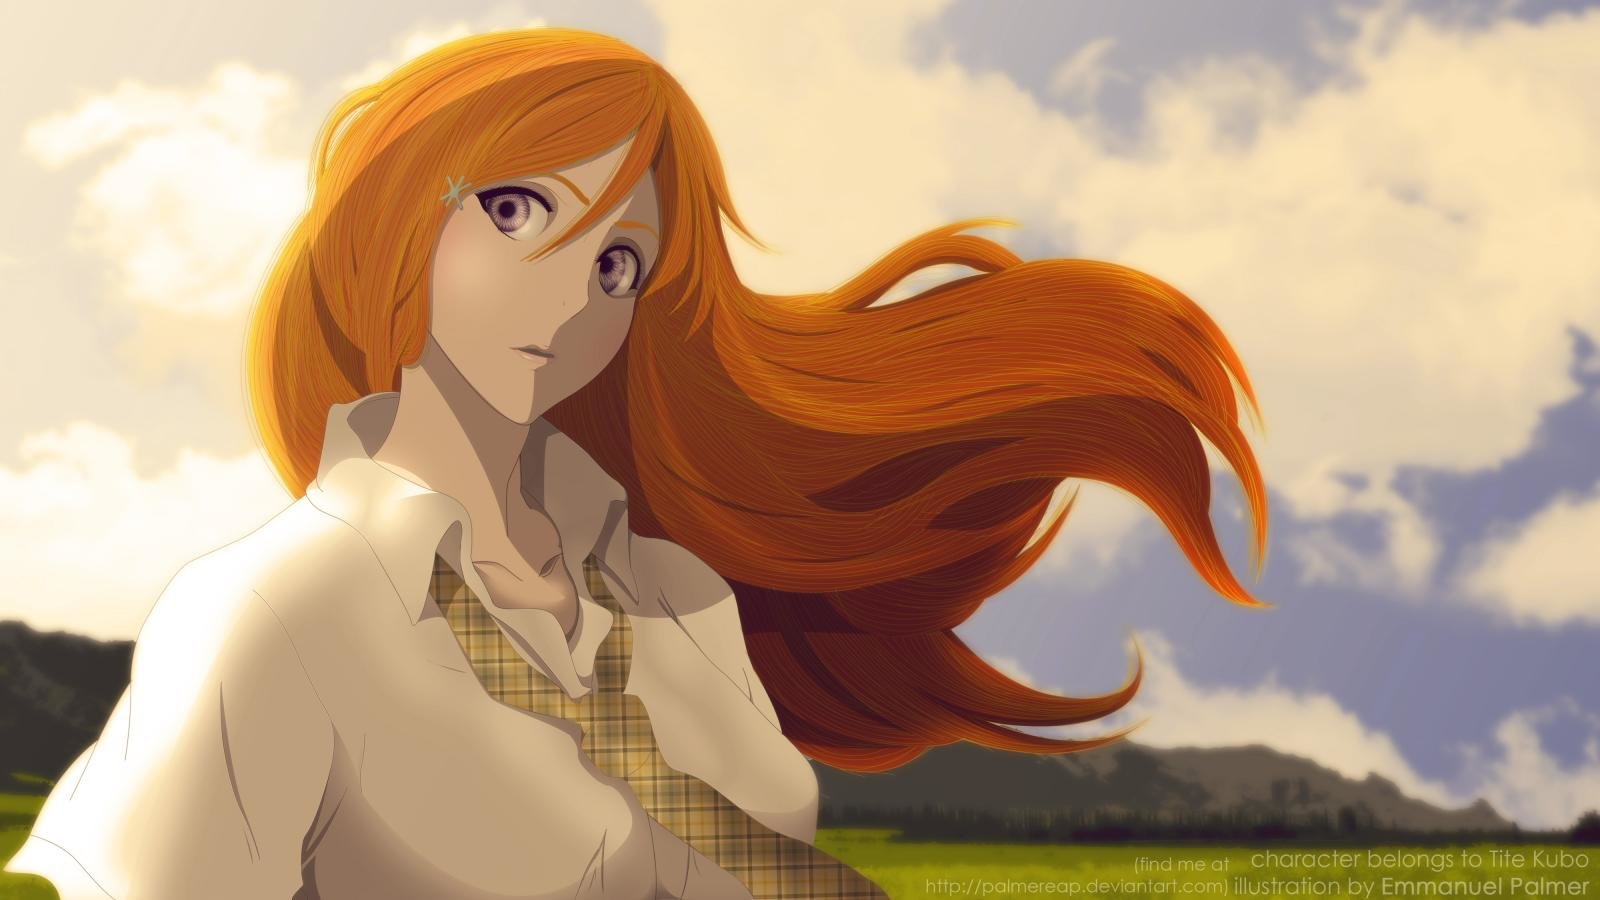 Awesome Orihime Inoue free background ID:416704 for hd 1600x900 desktop